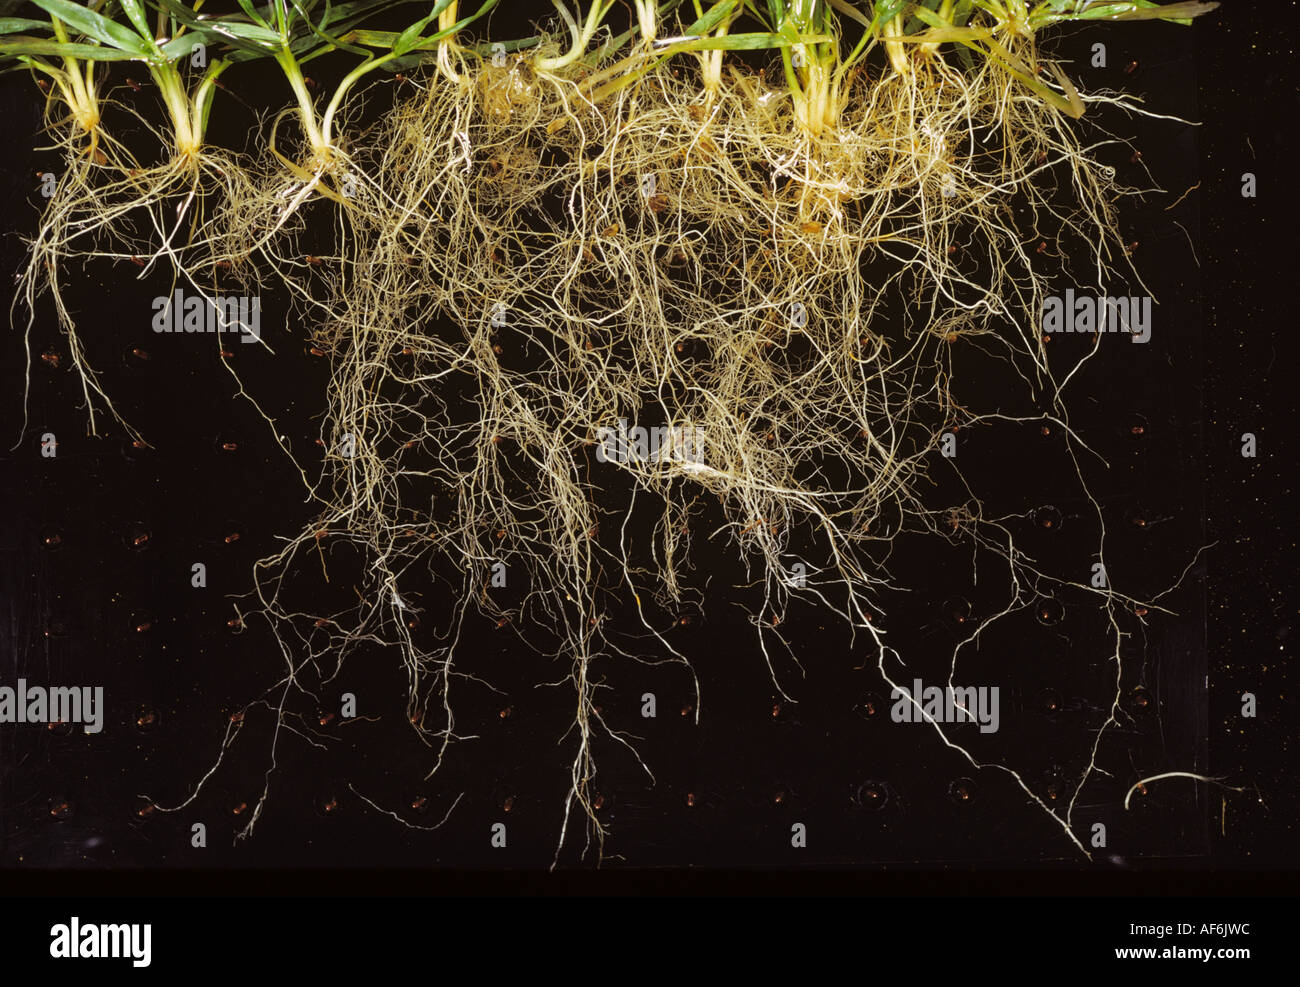 Sampled winter wheat seedling roots establishing after direct drilling the crop - Stock Image